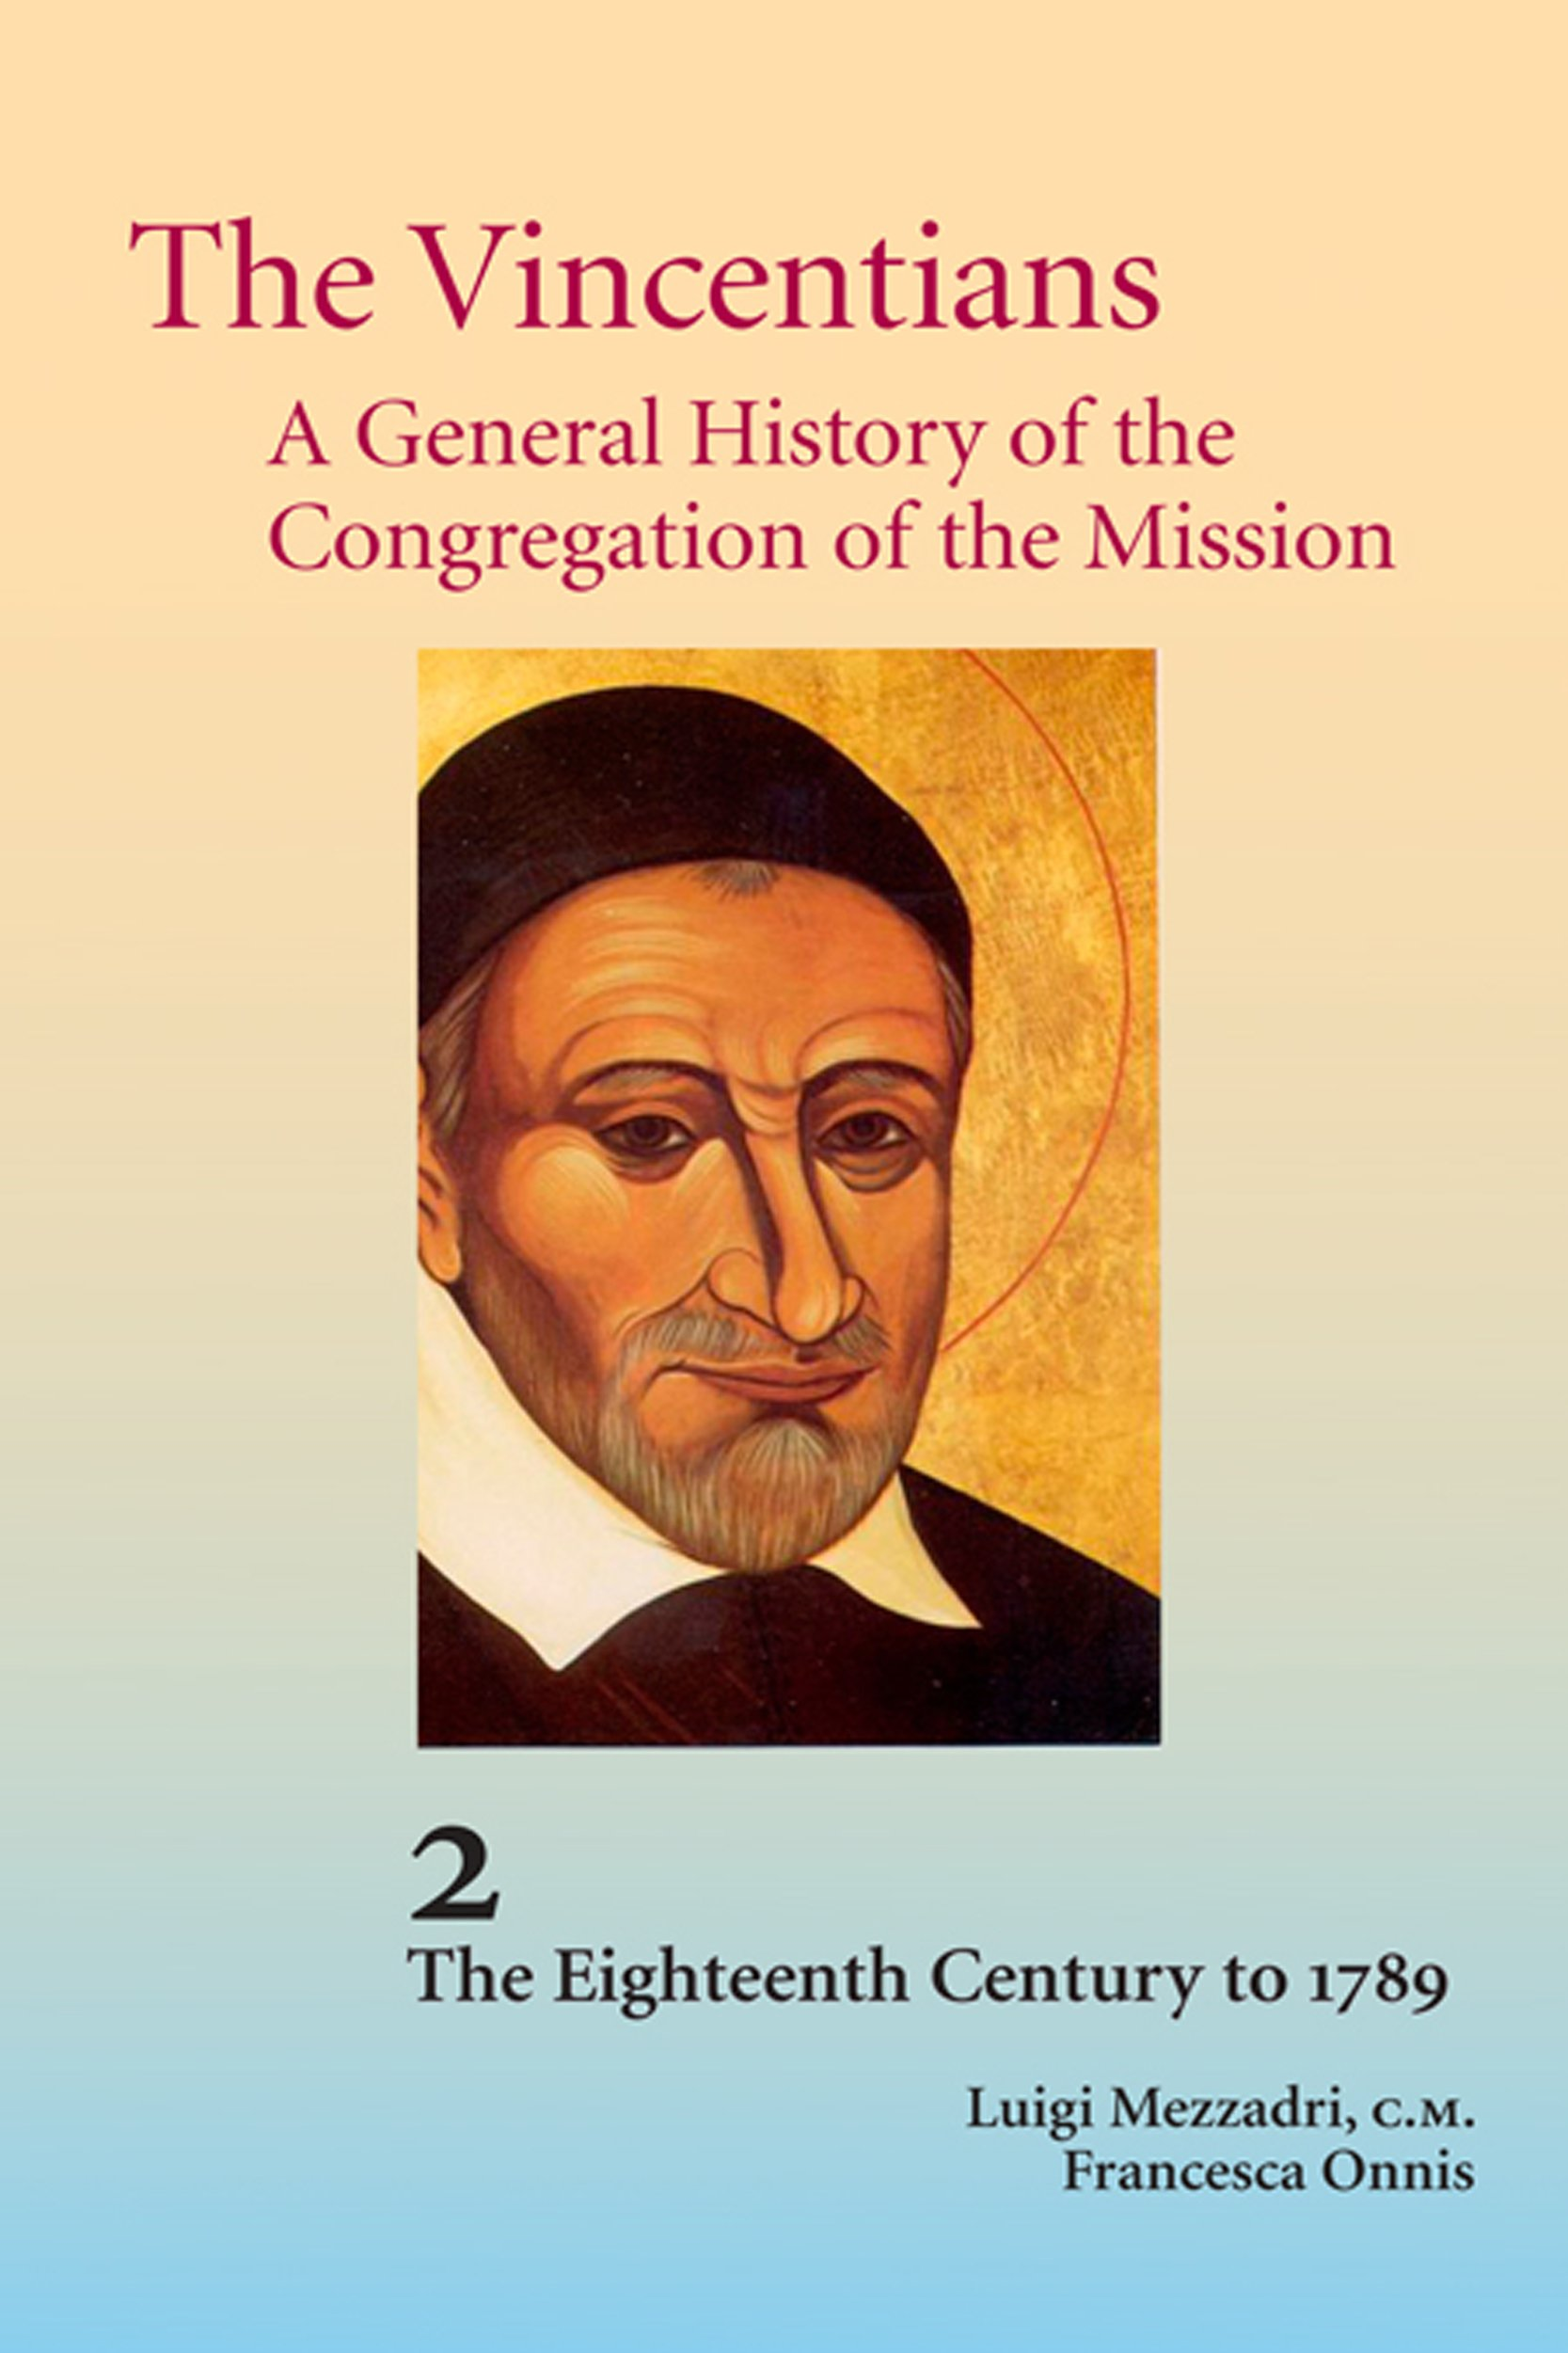 Download The Vincentians: A General History of the Congregation of the Mission (Volume 2. The Eighteenth Century to 1789) ebook